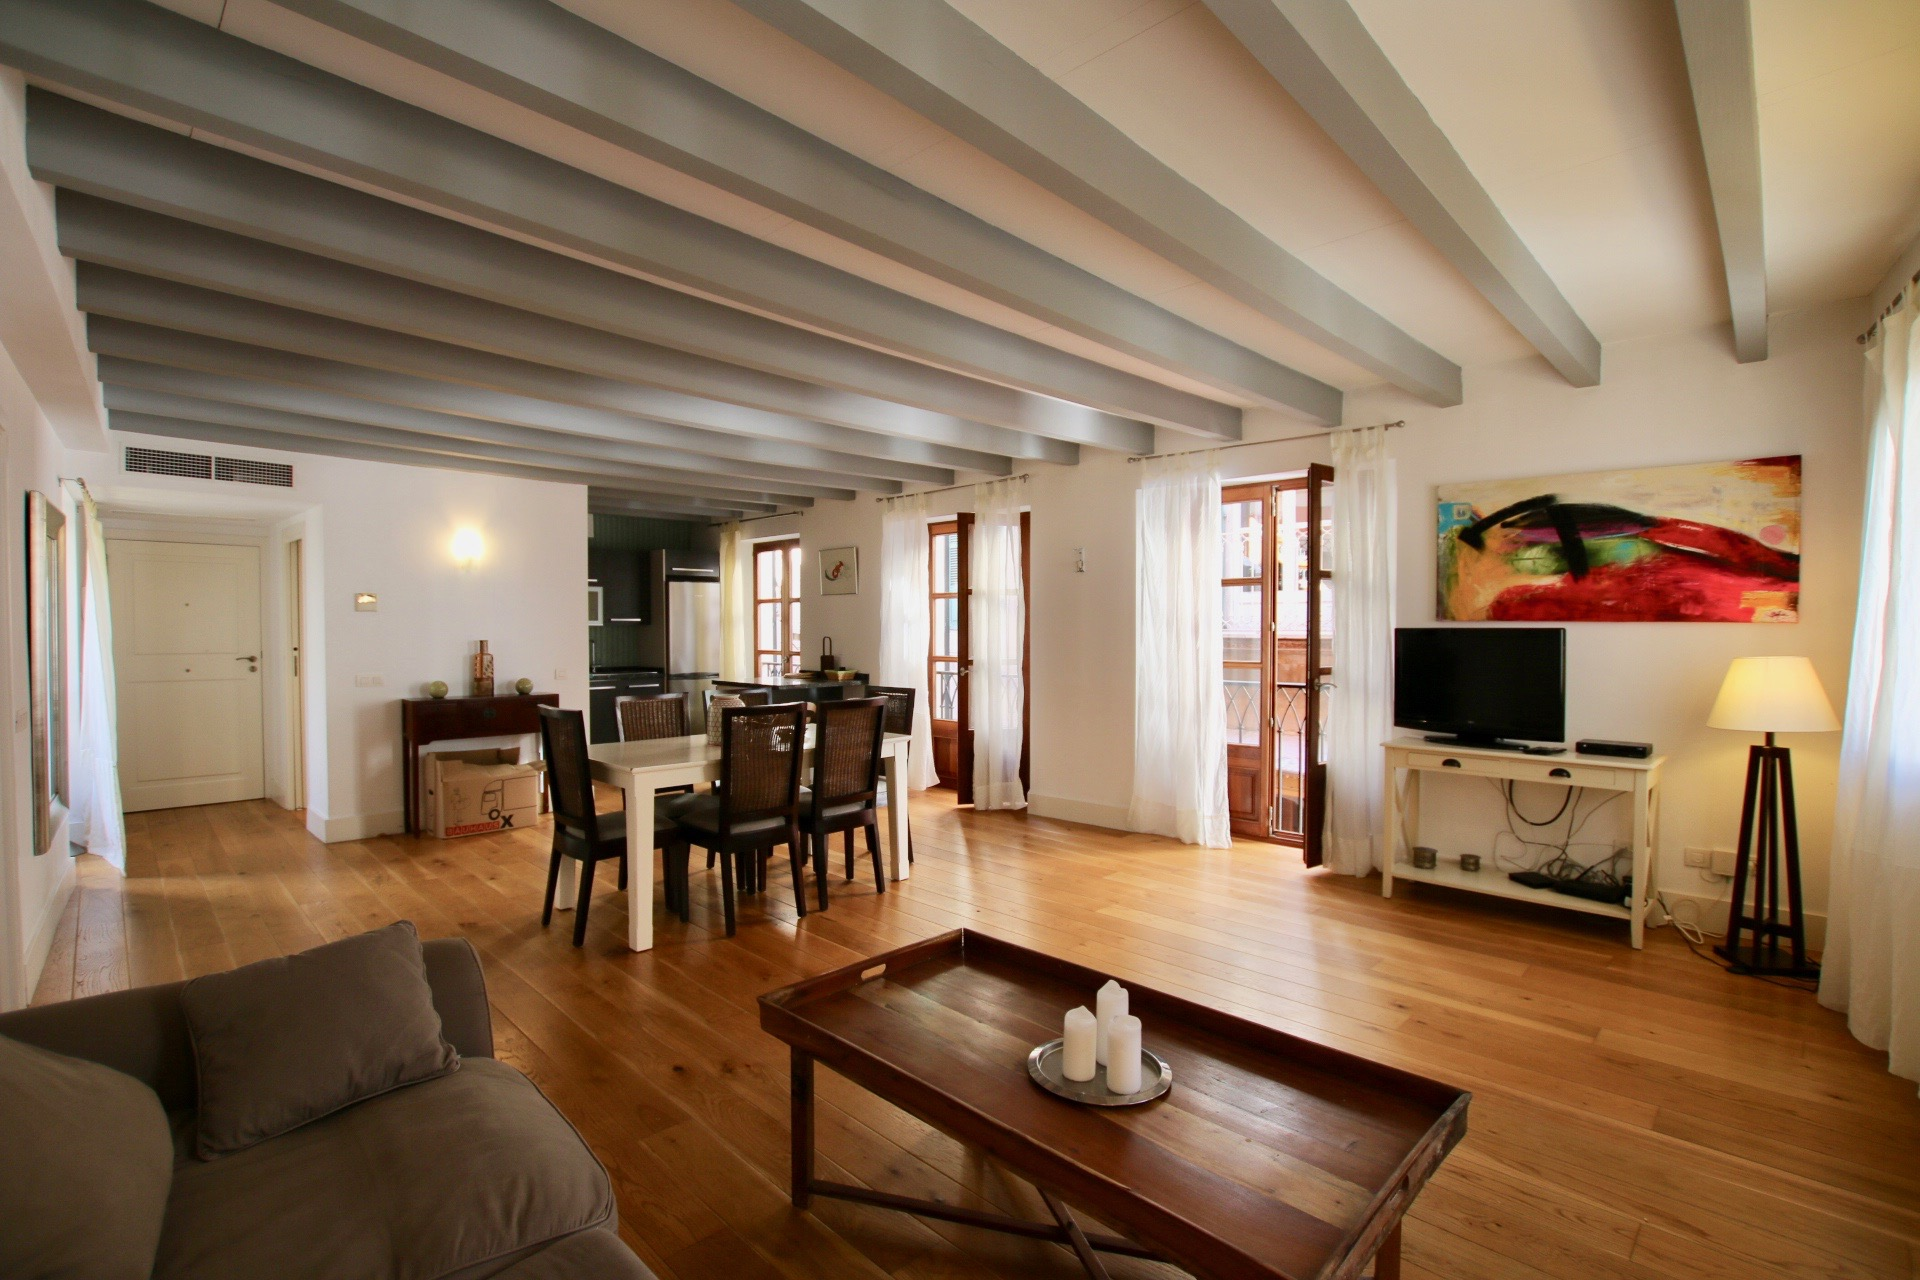 Modern and cozy  1 bedroom apartment in the heart of the old town of Palma @ Mallorca